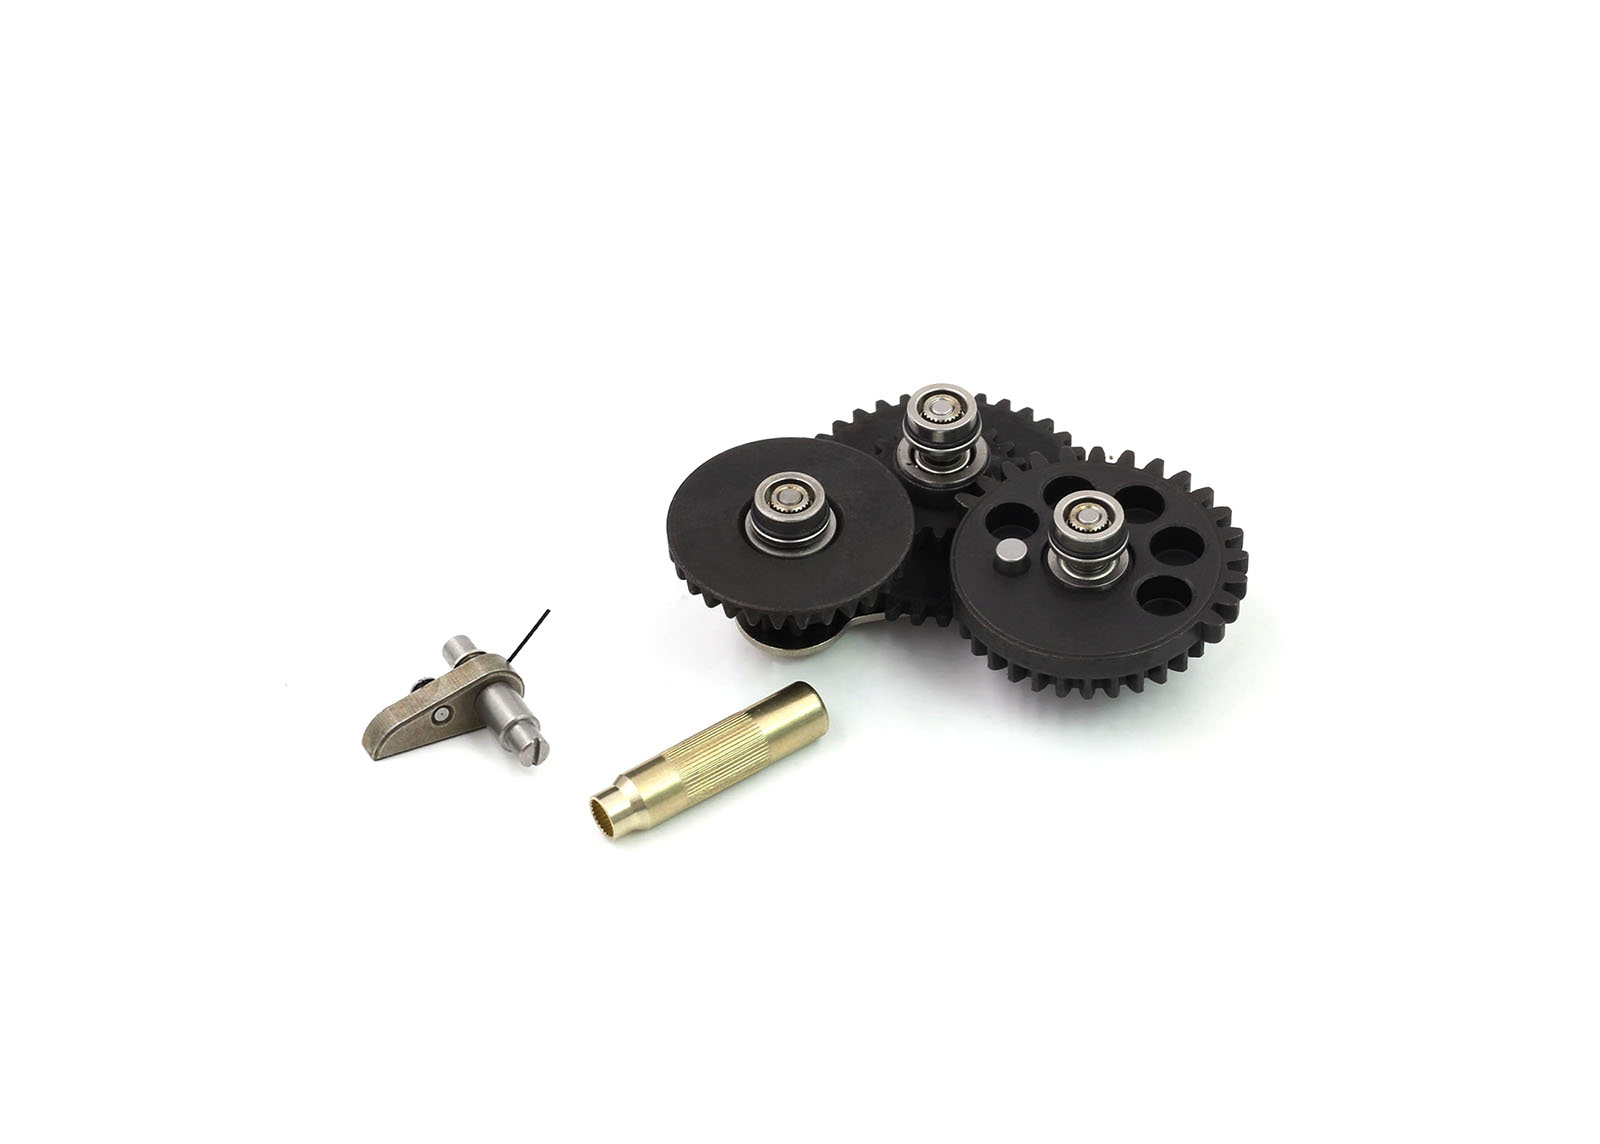 Modular Gear Set - SMOOTH 6mm Ver.2/Ver.3 (Speed 16.32:1+Gear Key) - Modify Airsoft parts